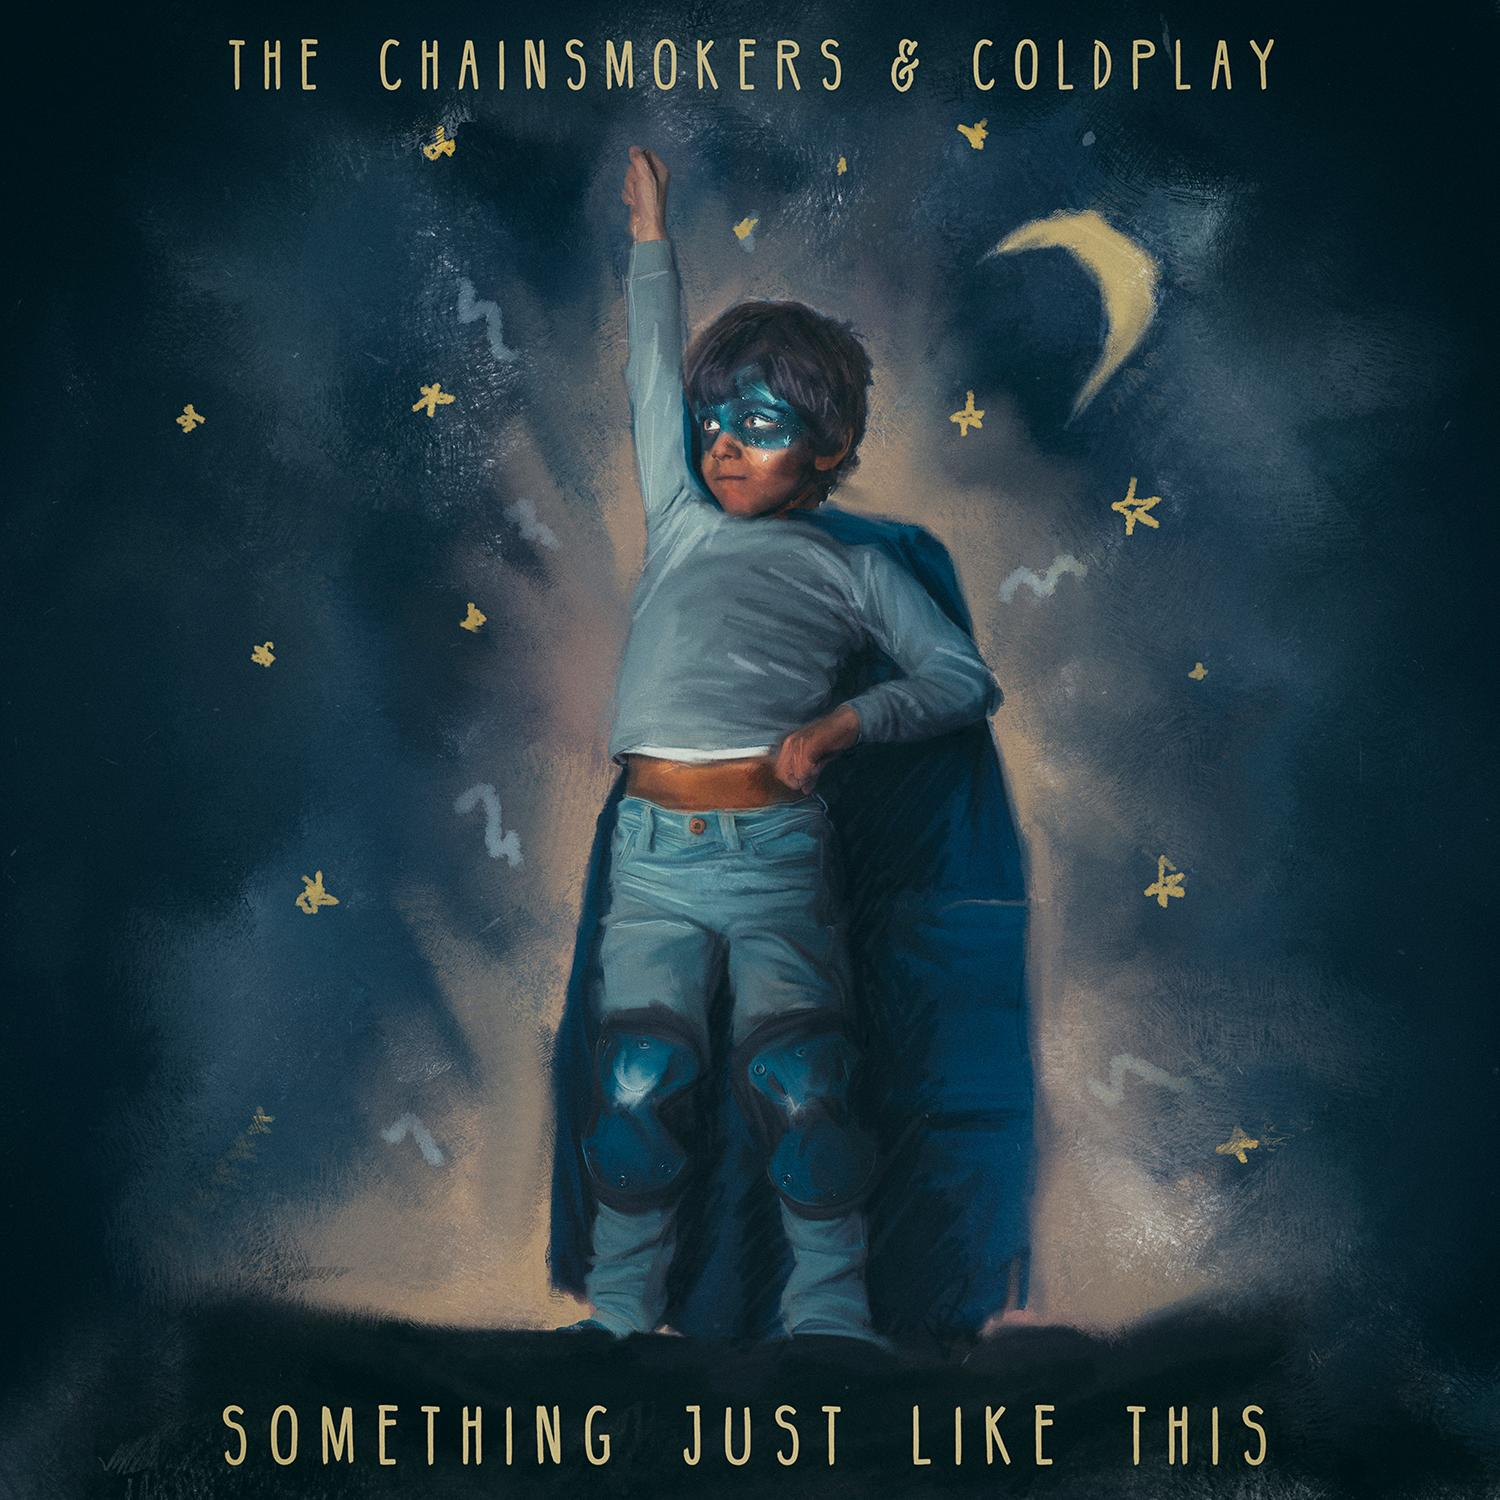 The Chainsmokers feat. Coldplay Something Like This single cover